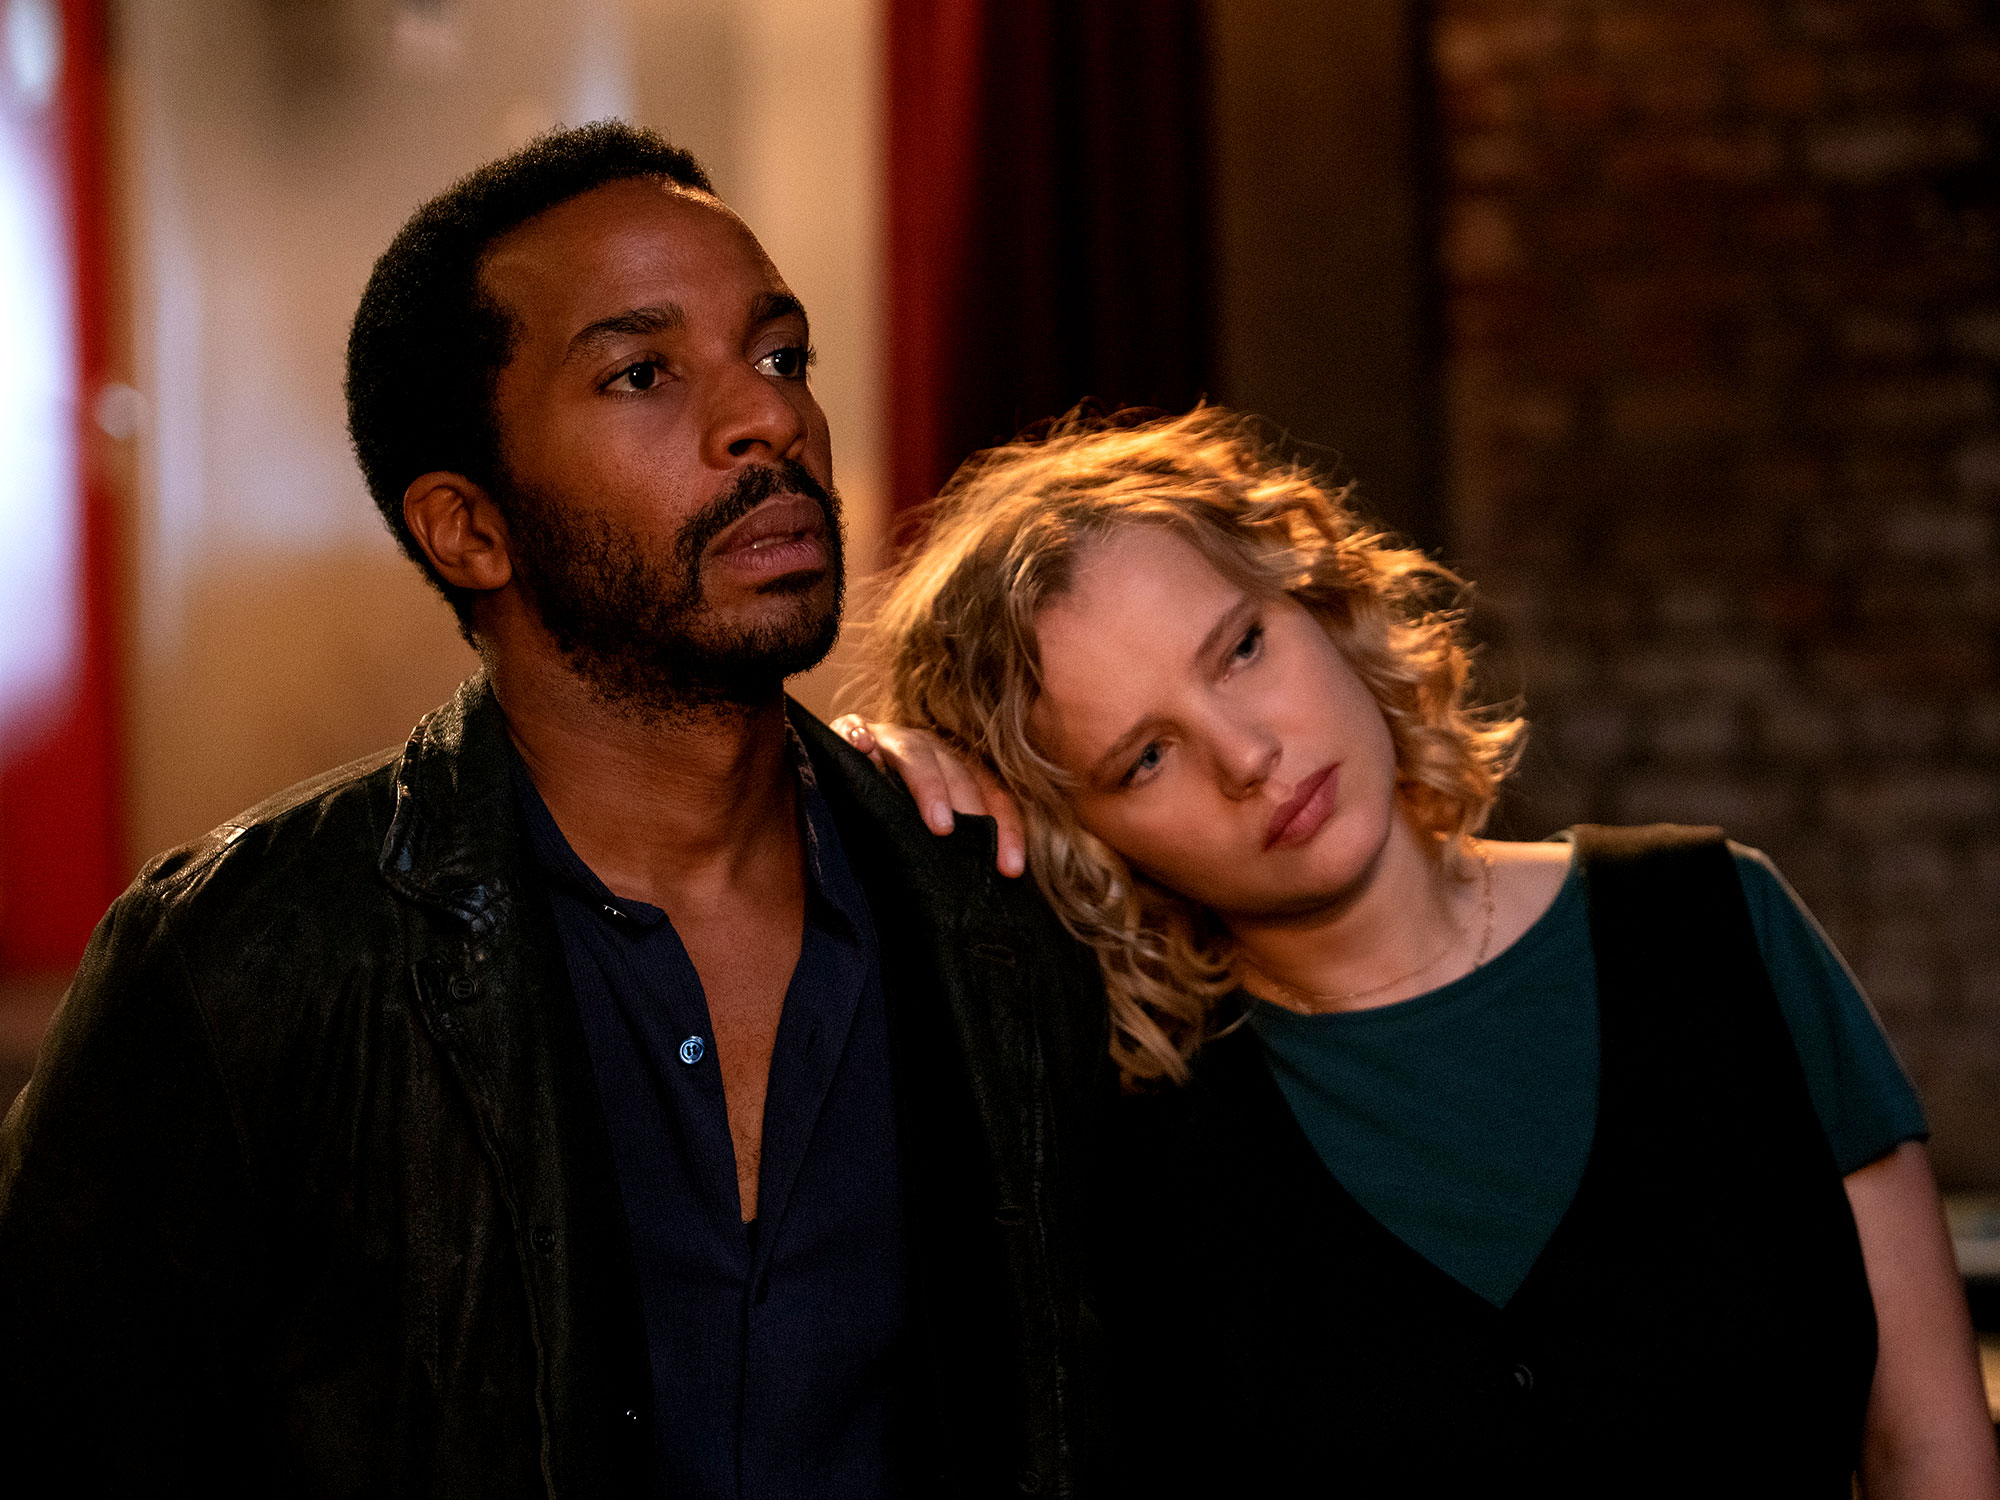 André Holland and Joanna Kulig in The Eddy (2020)